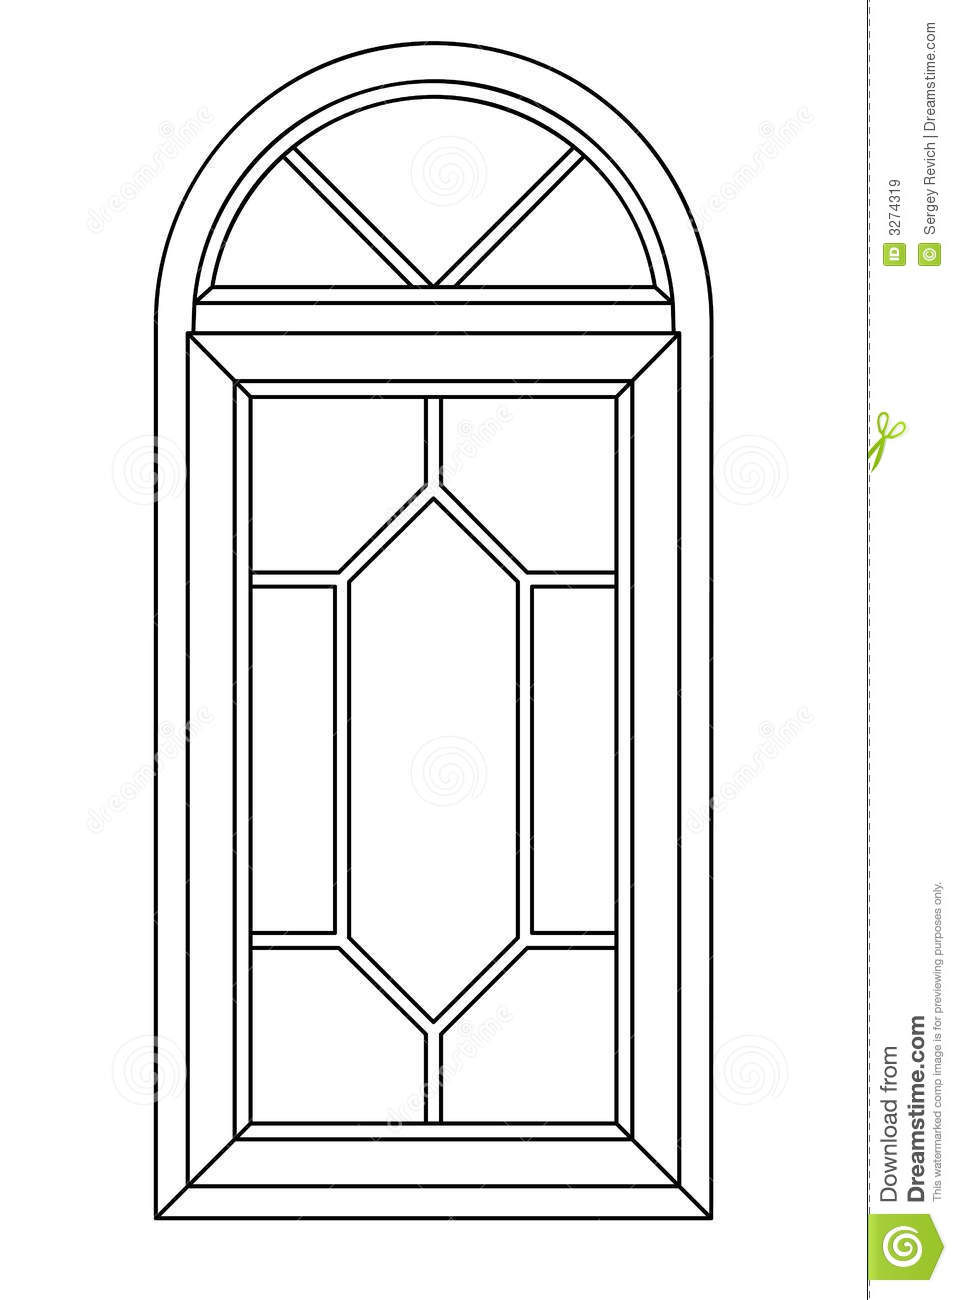 Window clipart arched window Window clipart Media clipart Arch